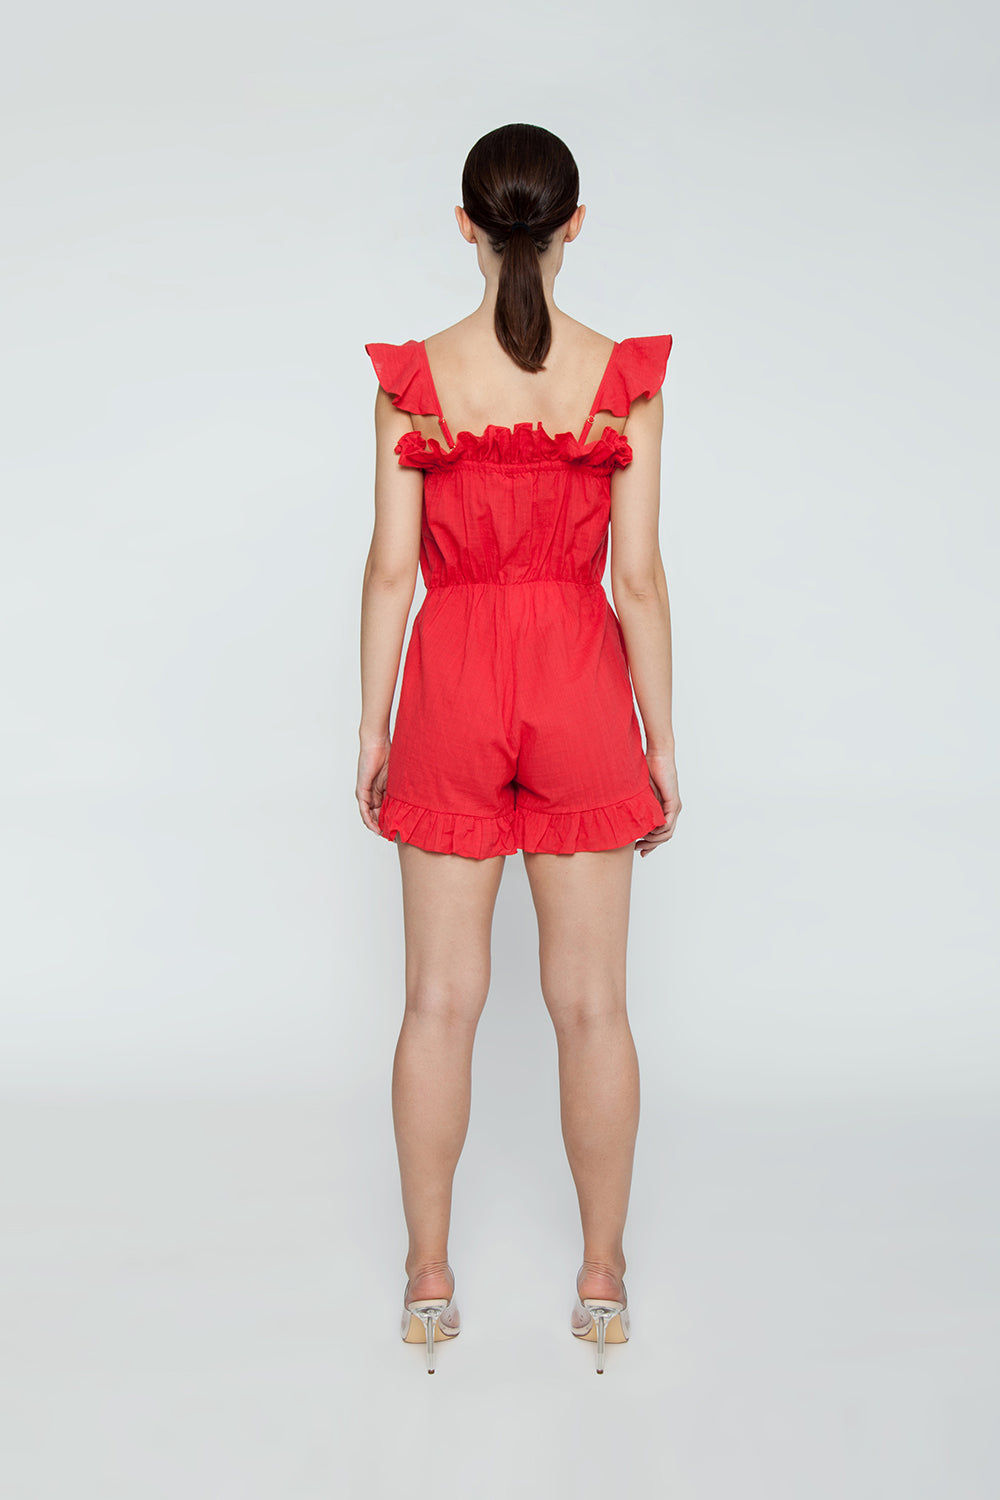 CLUBE BOSSA Follina Ruffle Romper - Pepper Red Romper | Pepper Red| Clube Bossa Follina Ruffle Romper - Pepper Red Ruffle romper Straight neckline  Ruffle sleeves Ruffle front detail  Front button closure  Back View